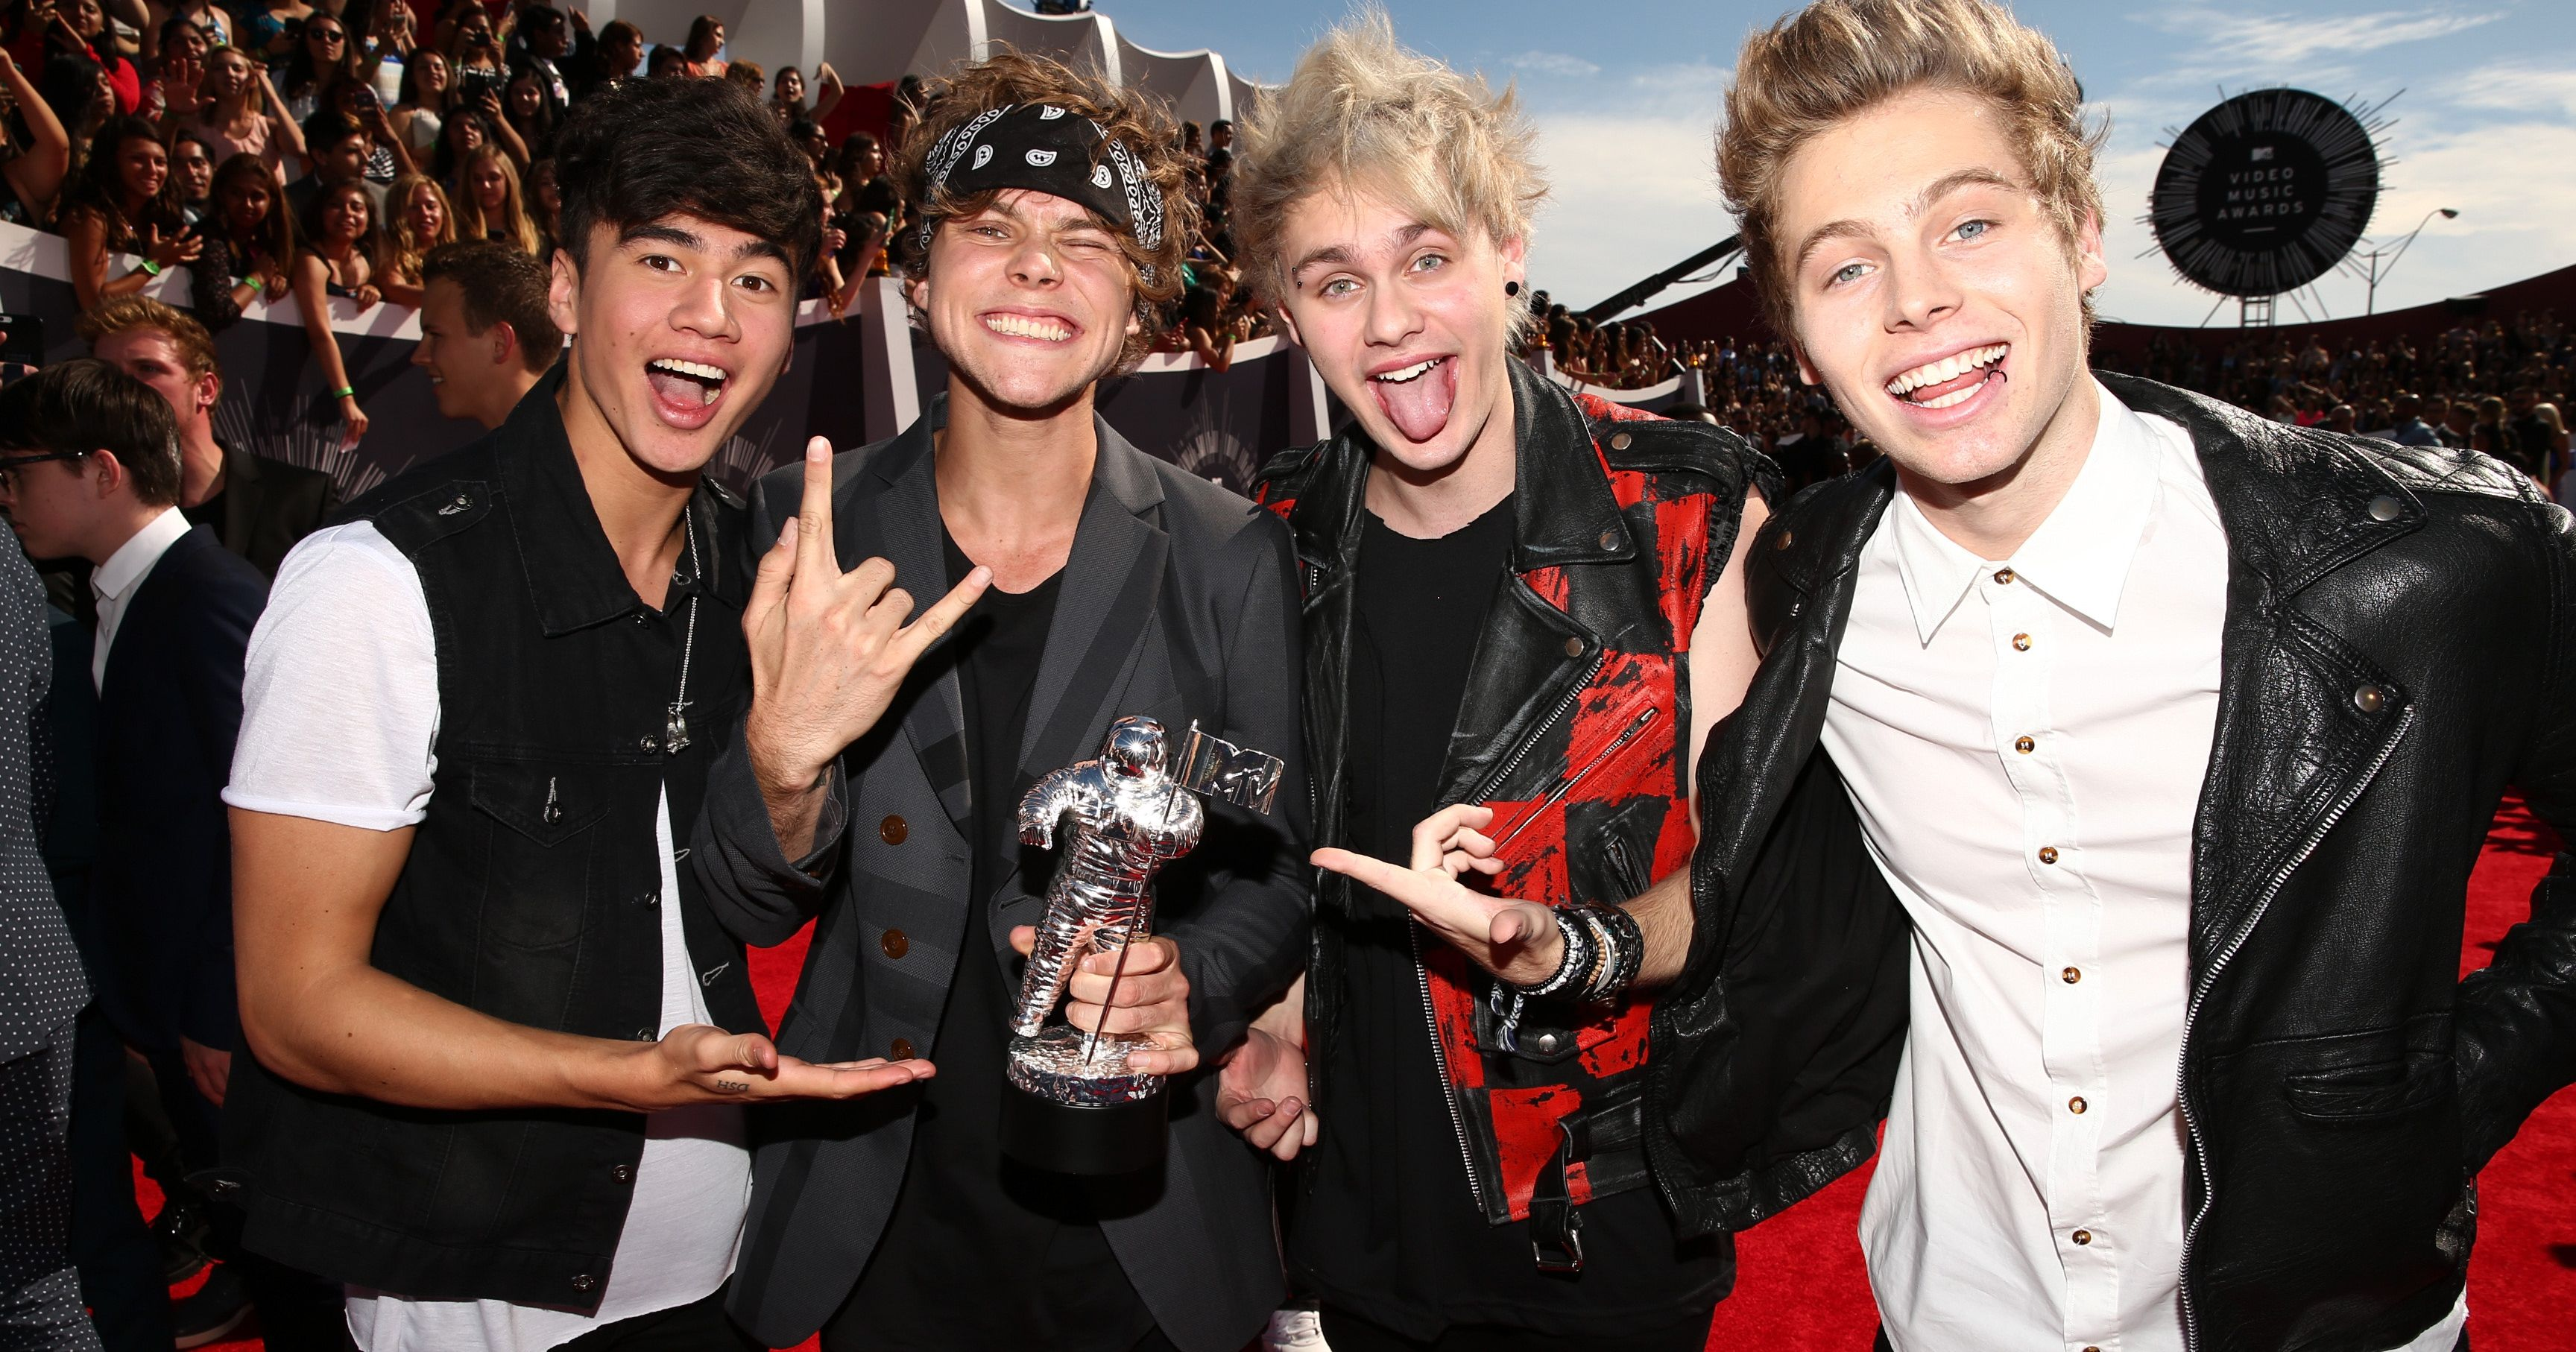 5 Seconds of Summer fans are mad at this